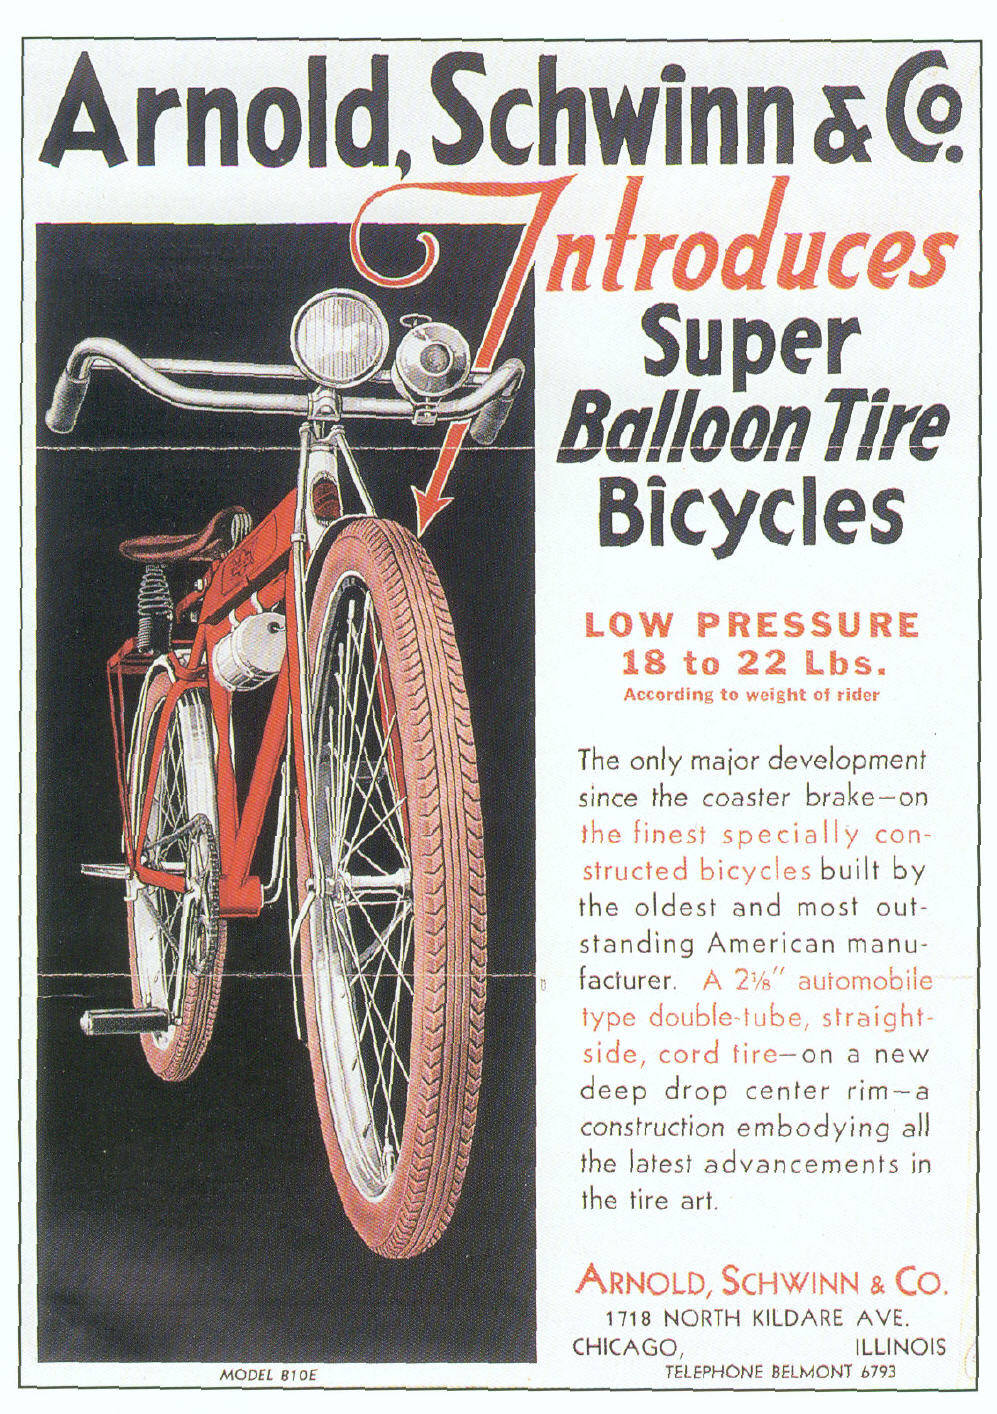 The First American Balloon Tire Bicycle